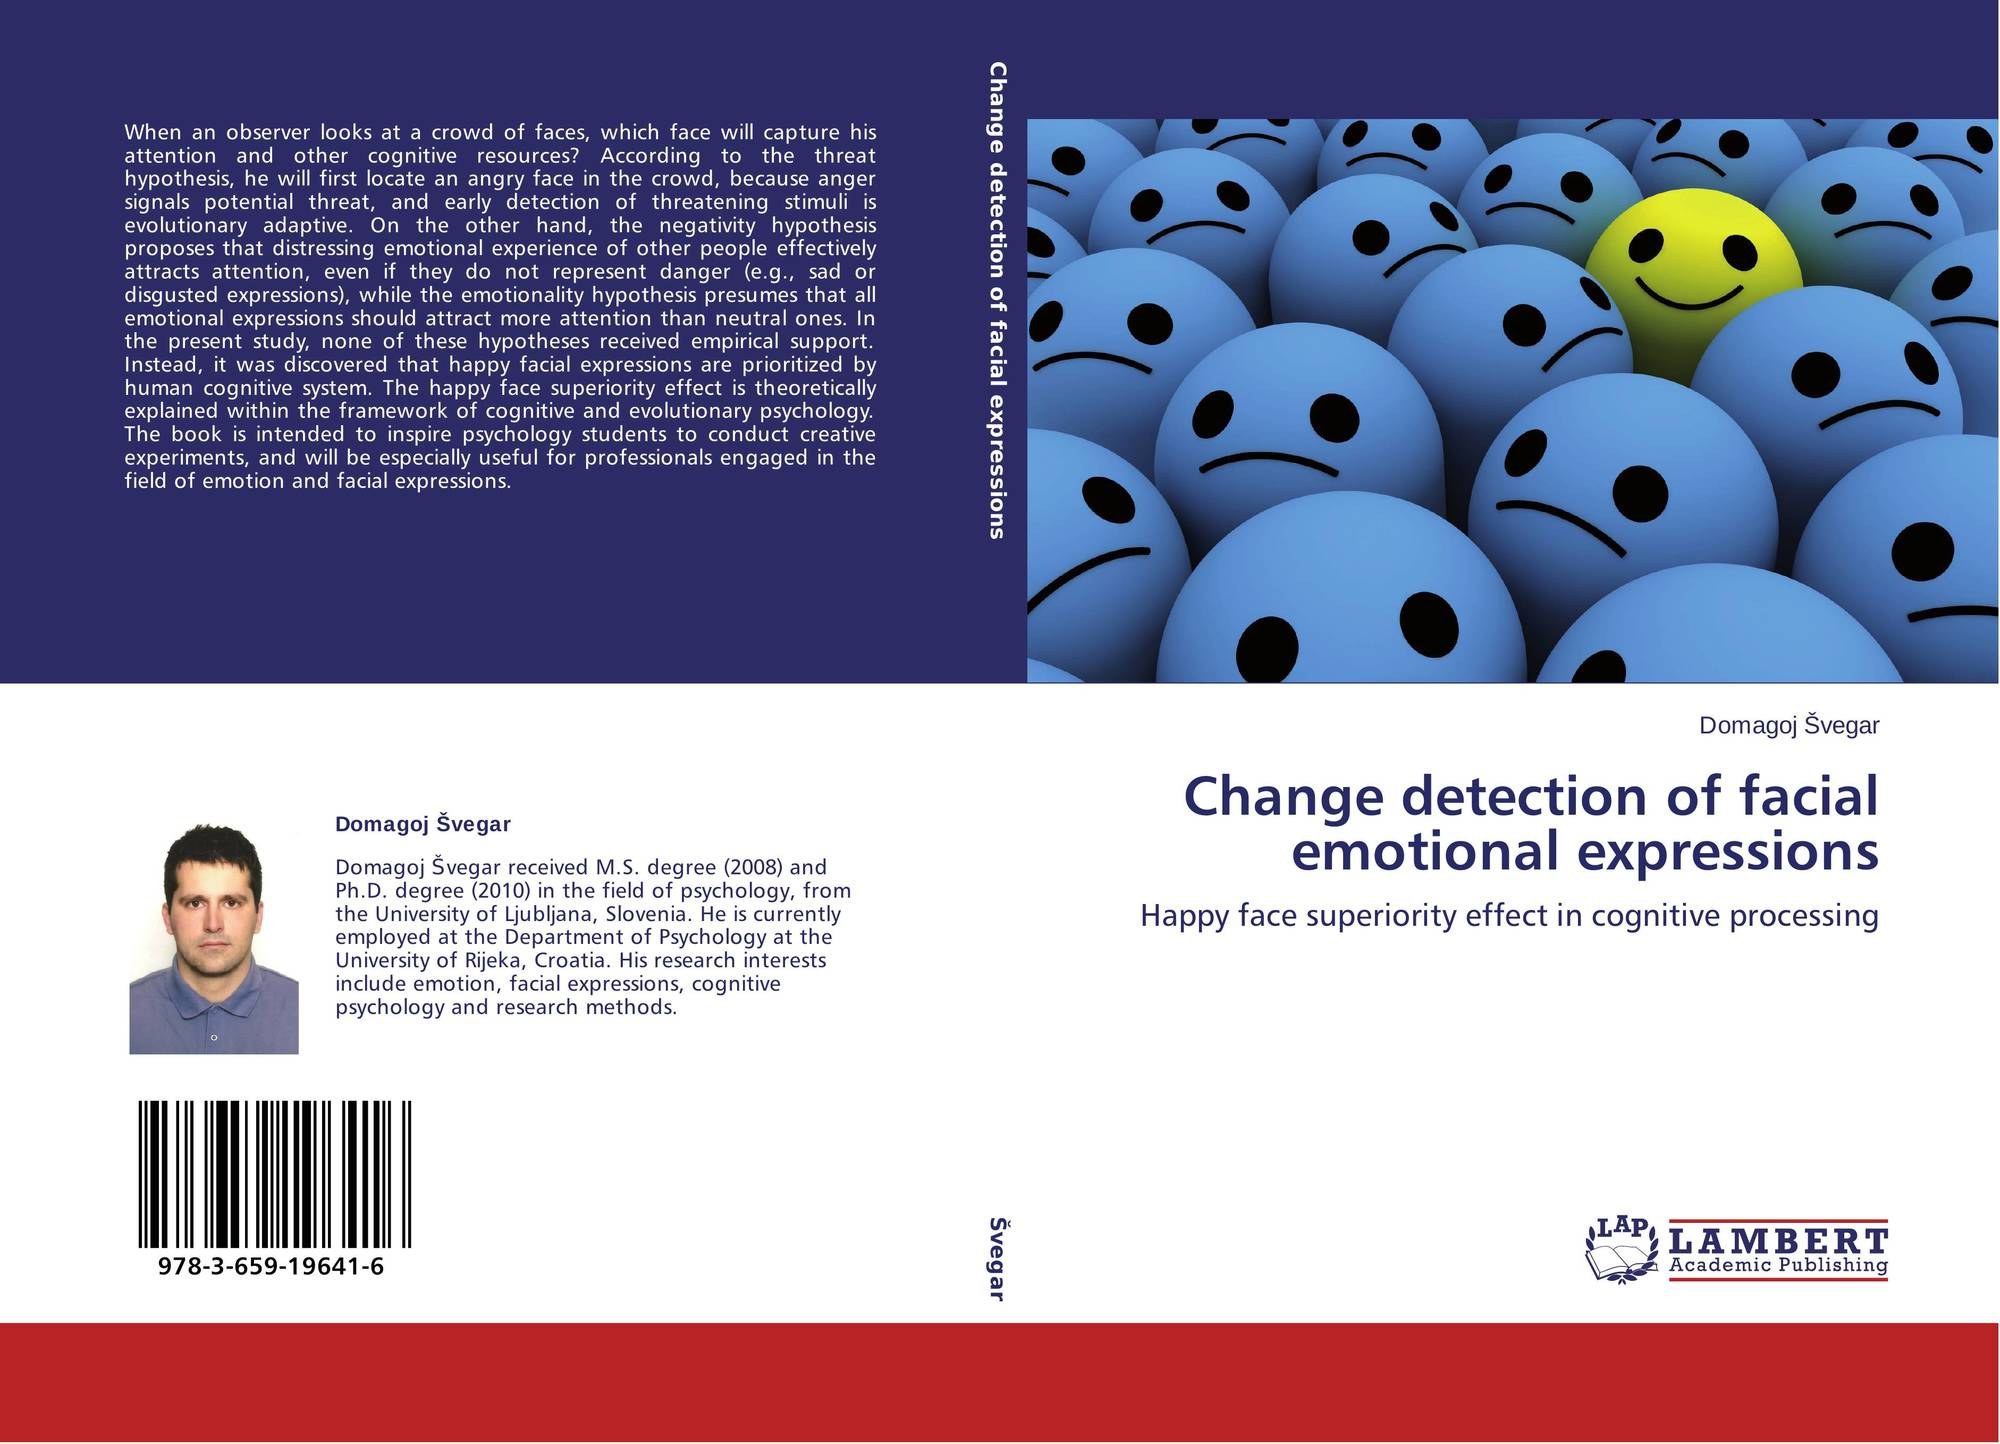 an introduction to the analysis of asymmetry in facial emotional expression A game called nevermind uses facial expression analysis to track facial expressions, making the game more stressful in response to the player's fear levels if that doesn't break your sweat, try exergaming your emotions.